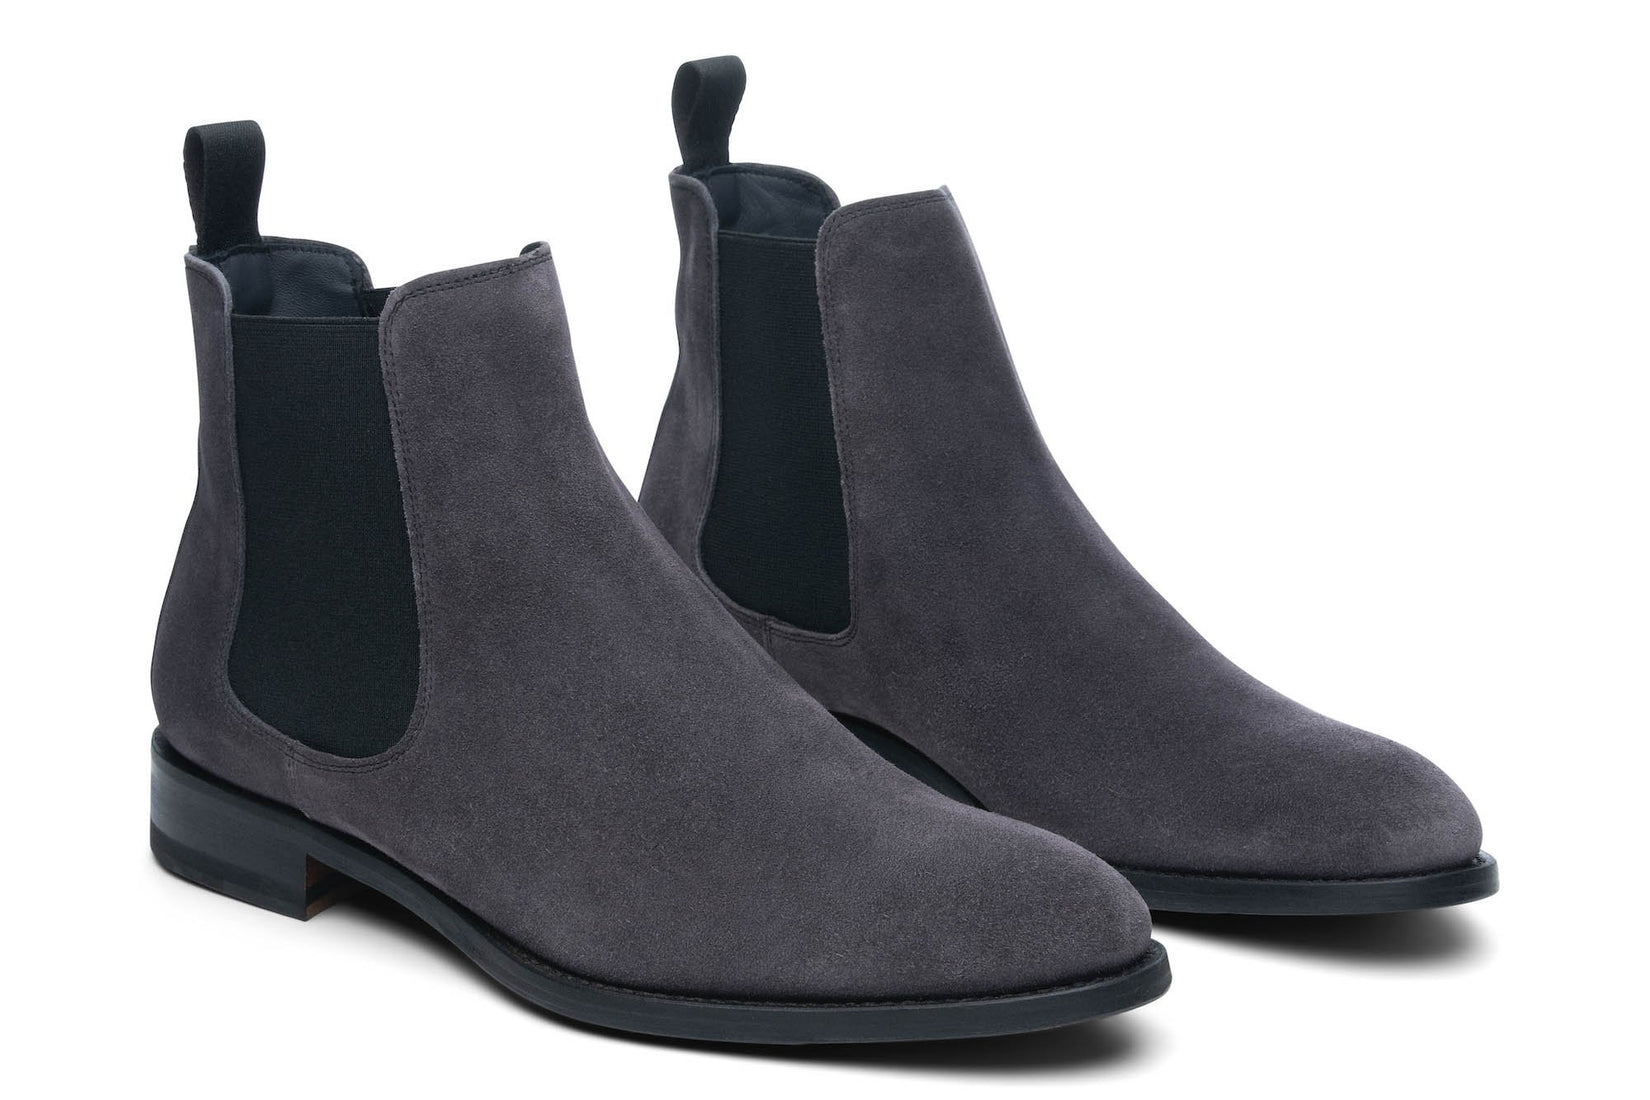 Men S Boots Ankari Floruss Chelsea Boot In Dark Grey